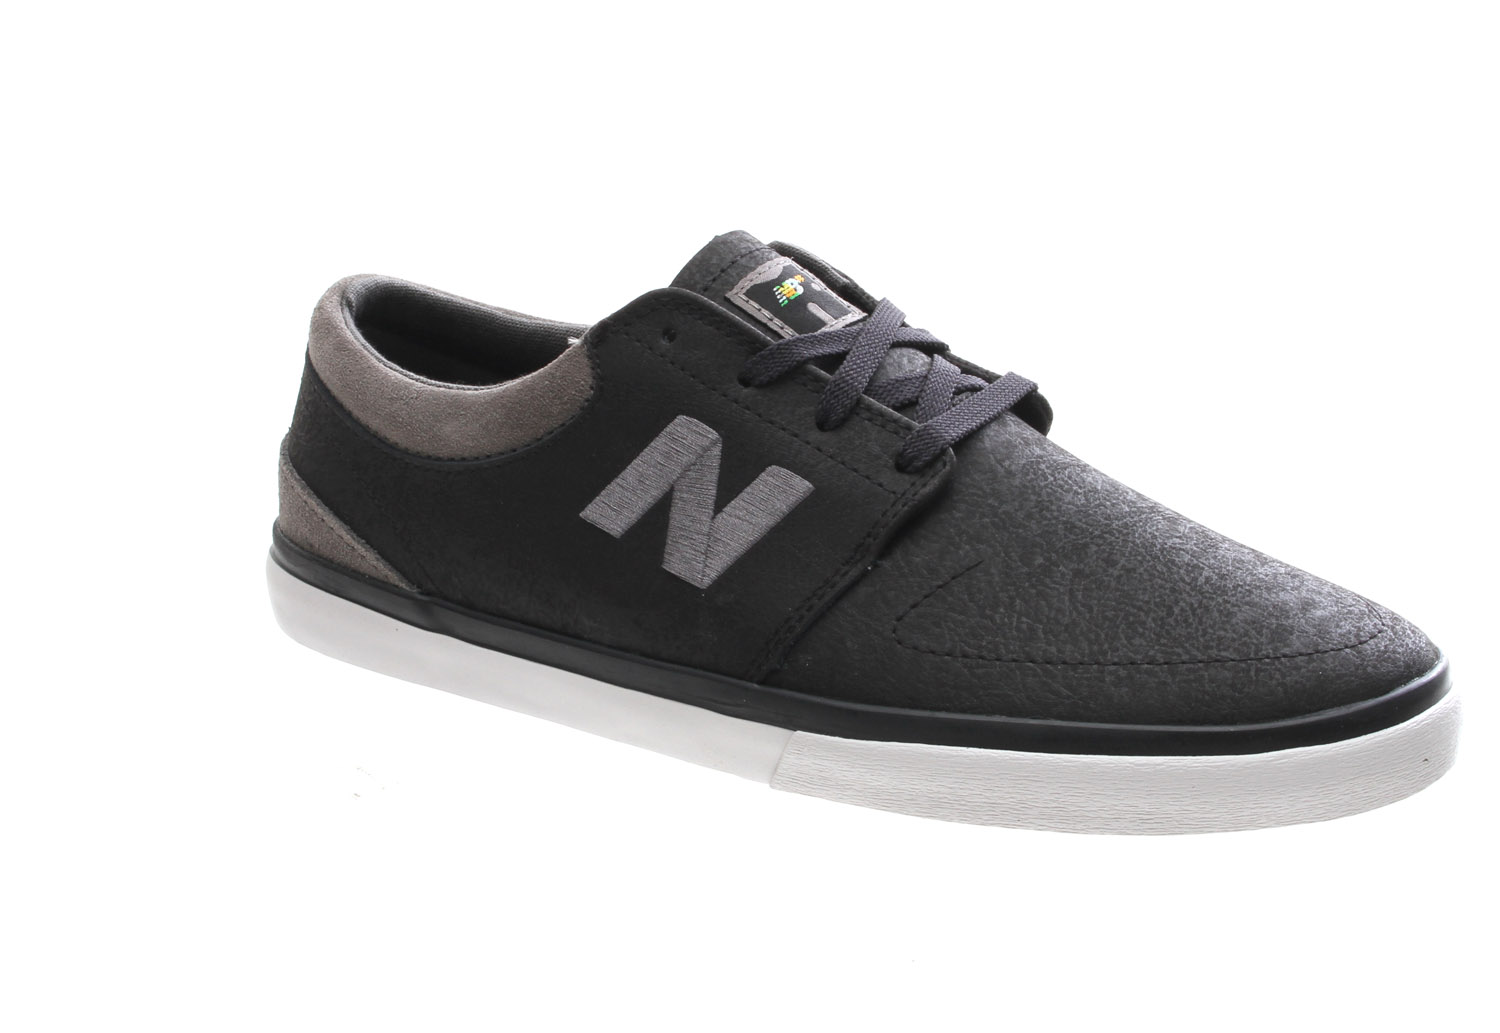 official photos 32e90 5dffb 360 by YoFLA · New Balance Numeric Brighton 344 Black High Abrasion Shoe